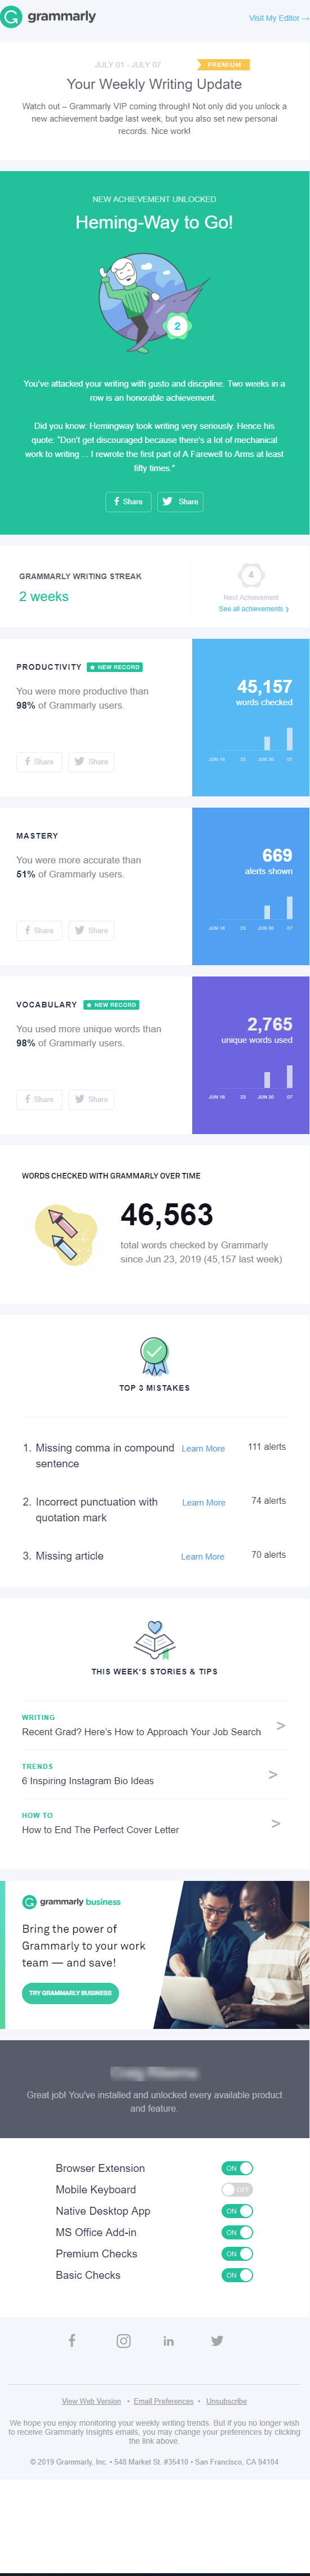 Grammarly - Your Weekly Writing Update